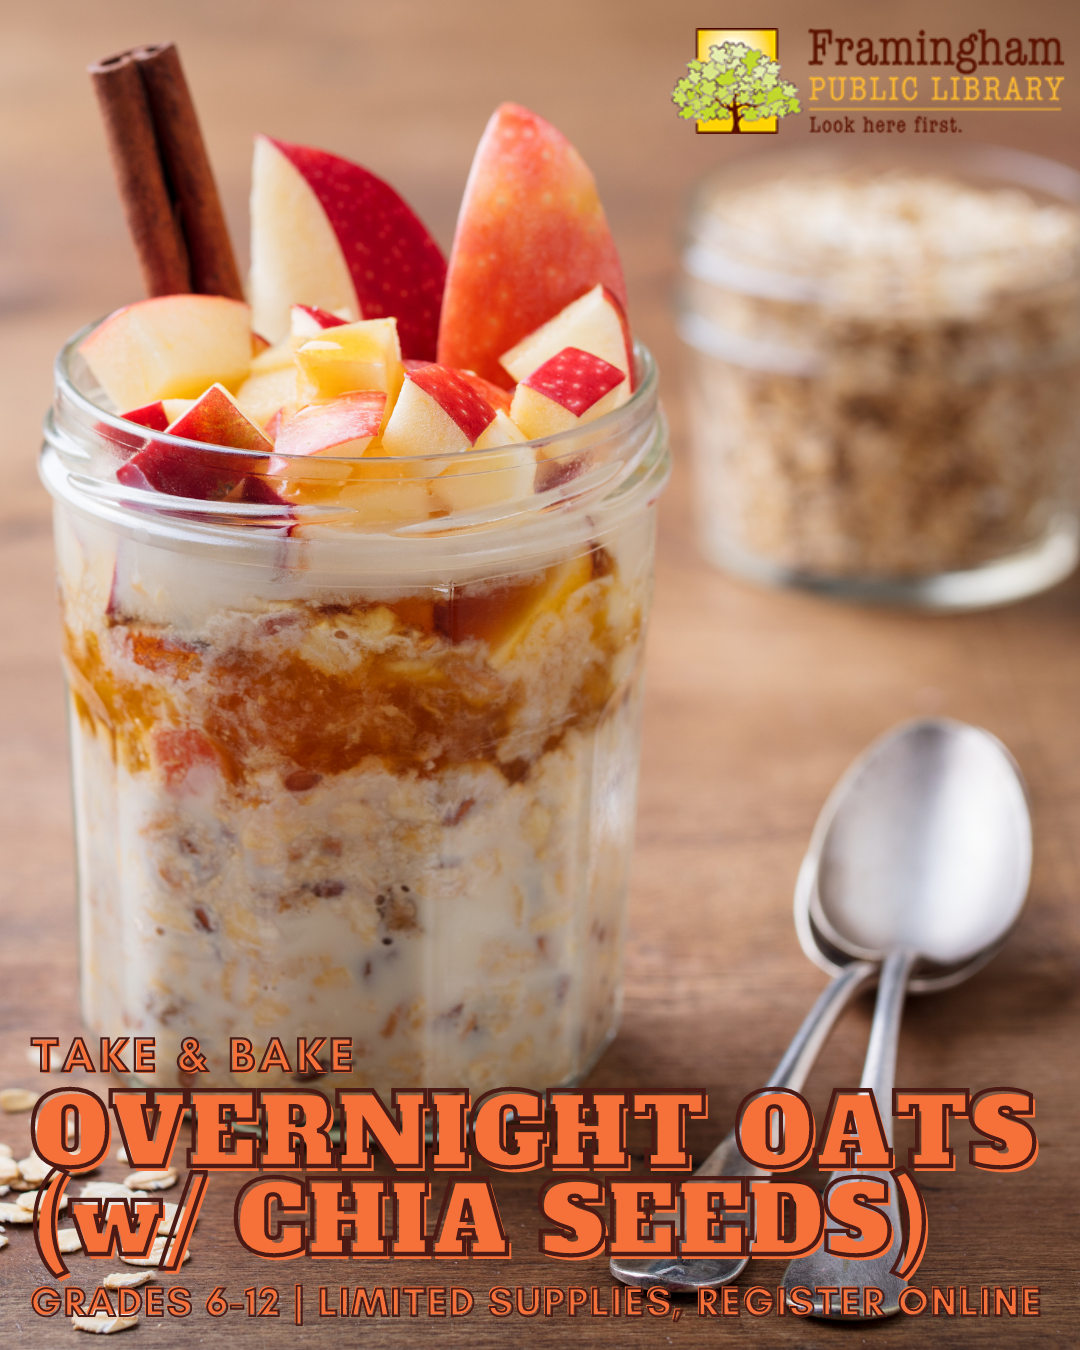 Overnight Oats (w/ Chia Seeds!) Take & Make Meal thumbnail Photo